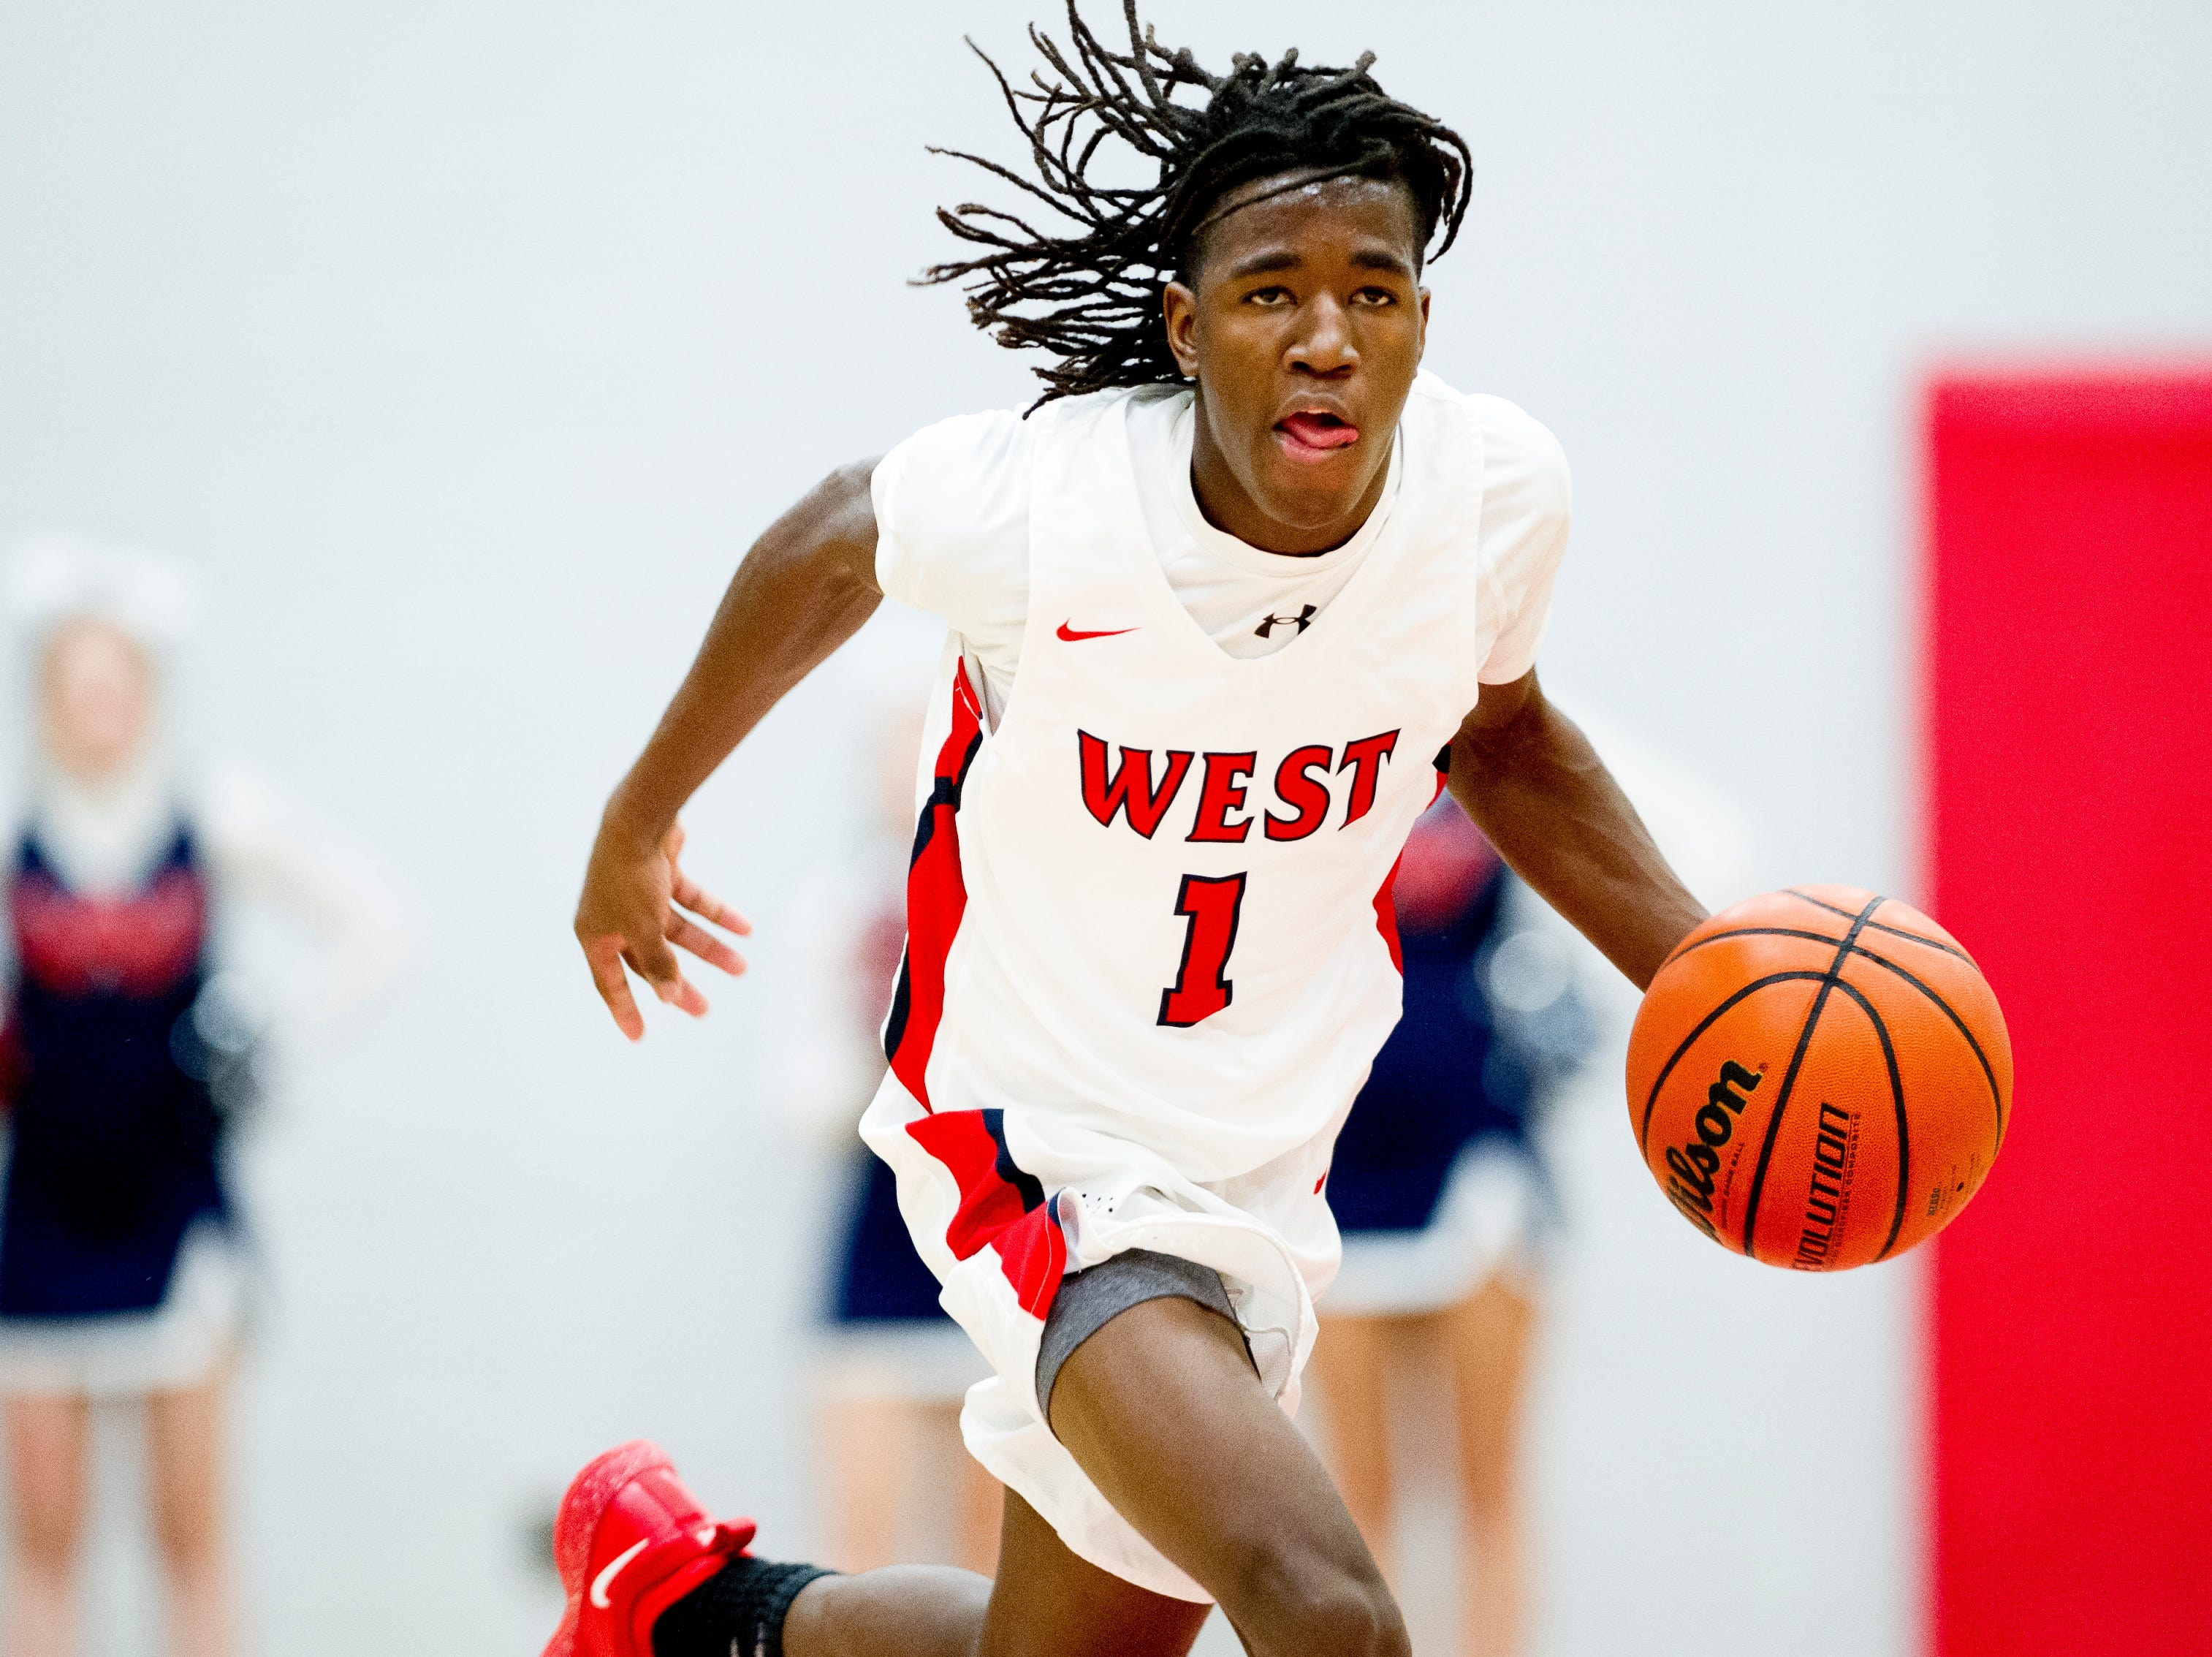 West's Michael Webb (1) dribbles the ball down the court during a game between West and Webb at West High School in Knoxville, Tennessee on Friday, January 4, 2019.